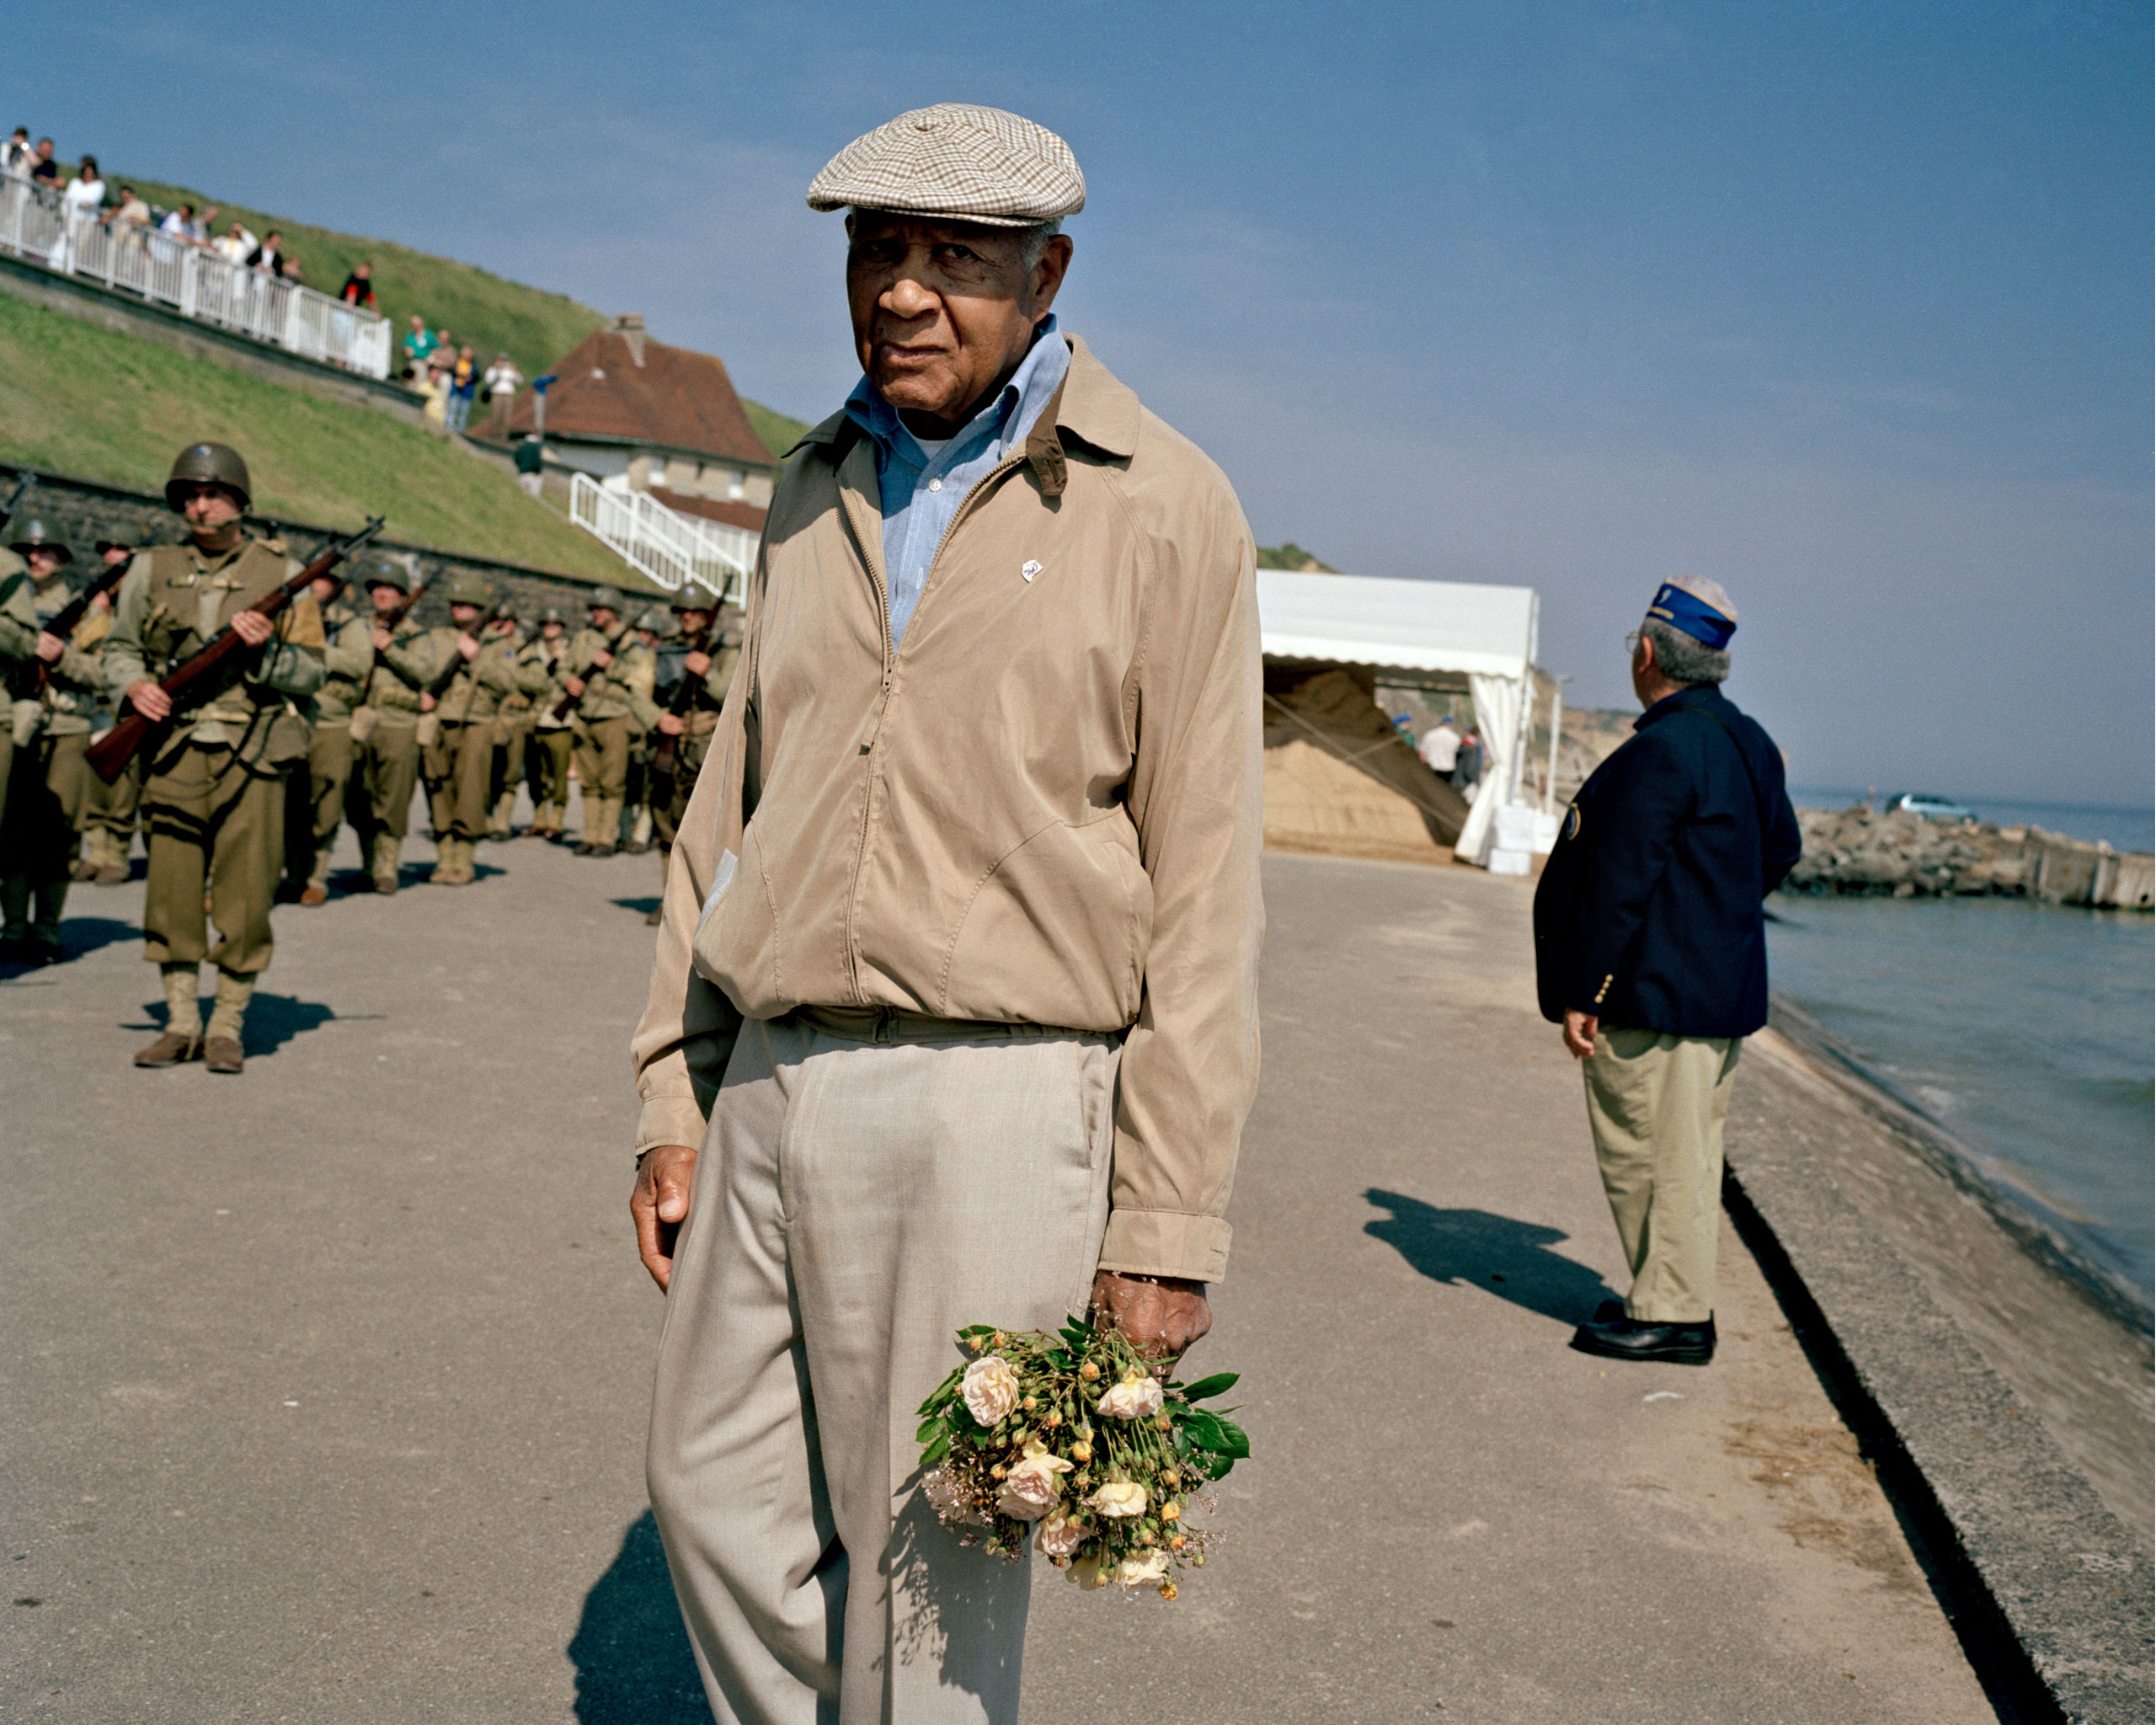 Omaha Beach, 60th anniversary of D-Day, 2004A veteran of the 29th Infantry Division in four Ville-Sur-Mer.